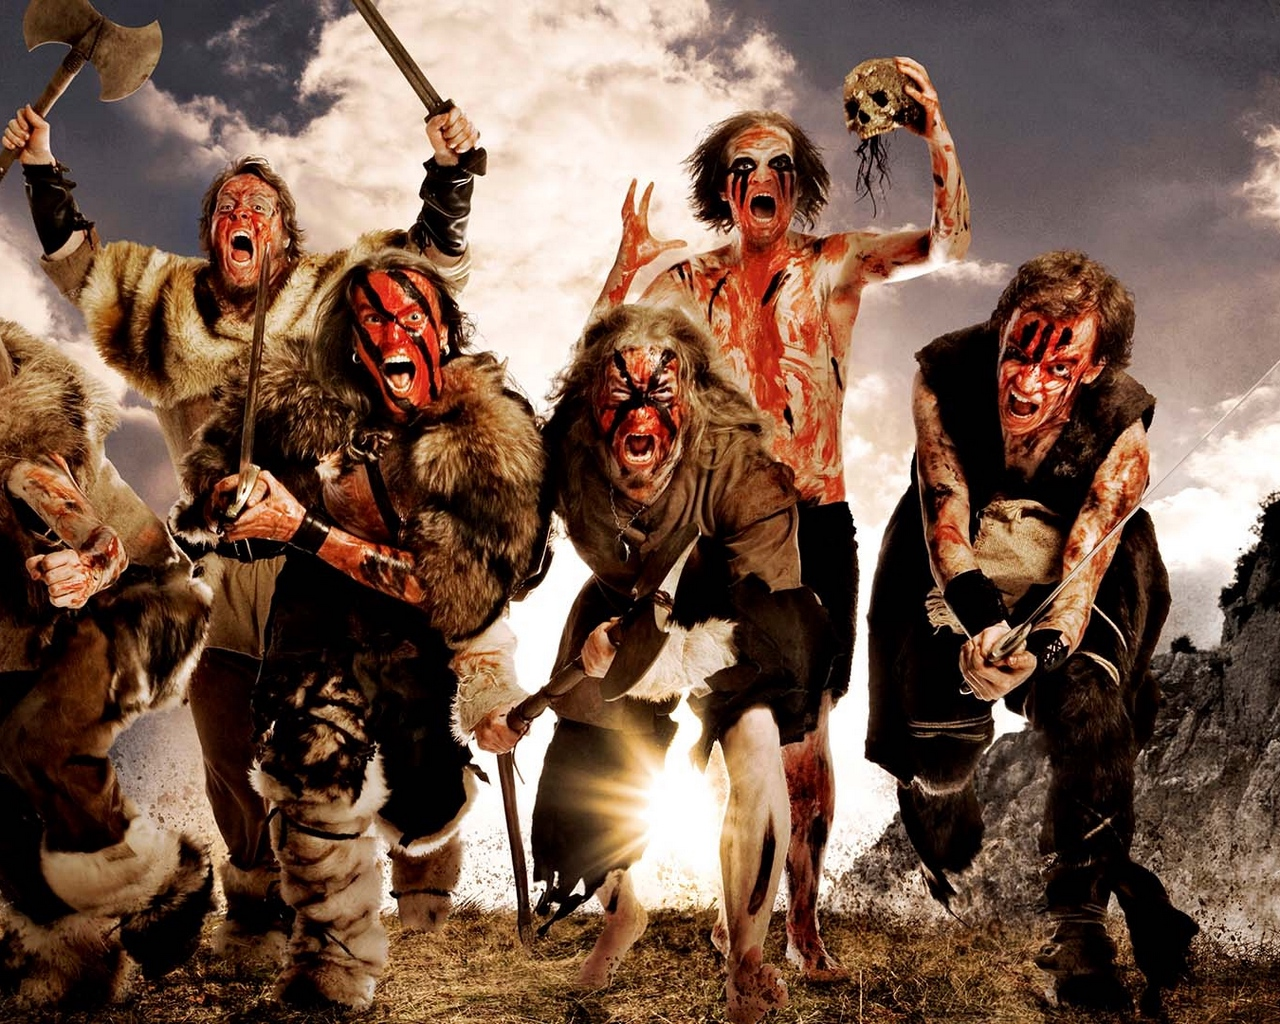 Download wallpaper 1280x1024 turisas arm skull image scream 1280x1024